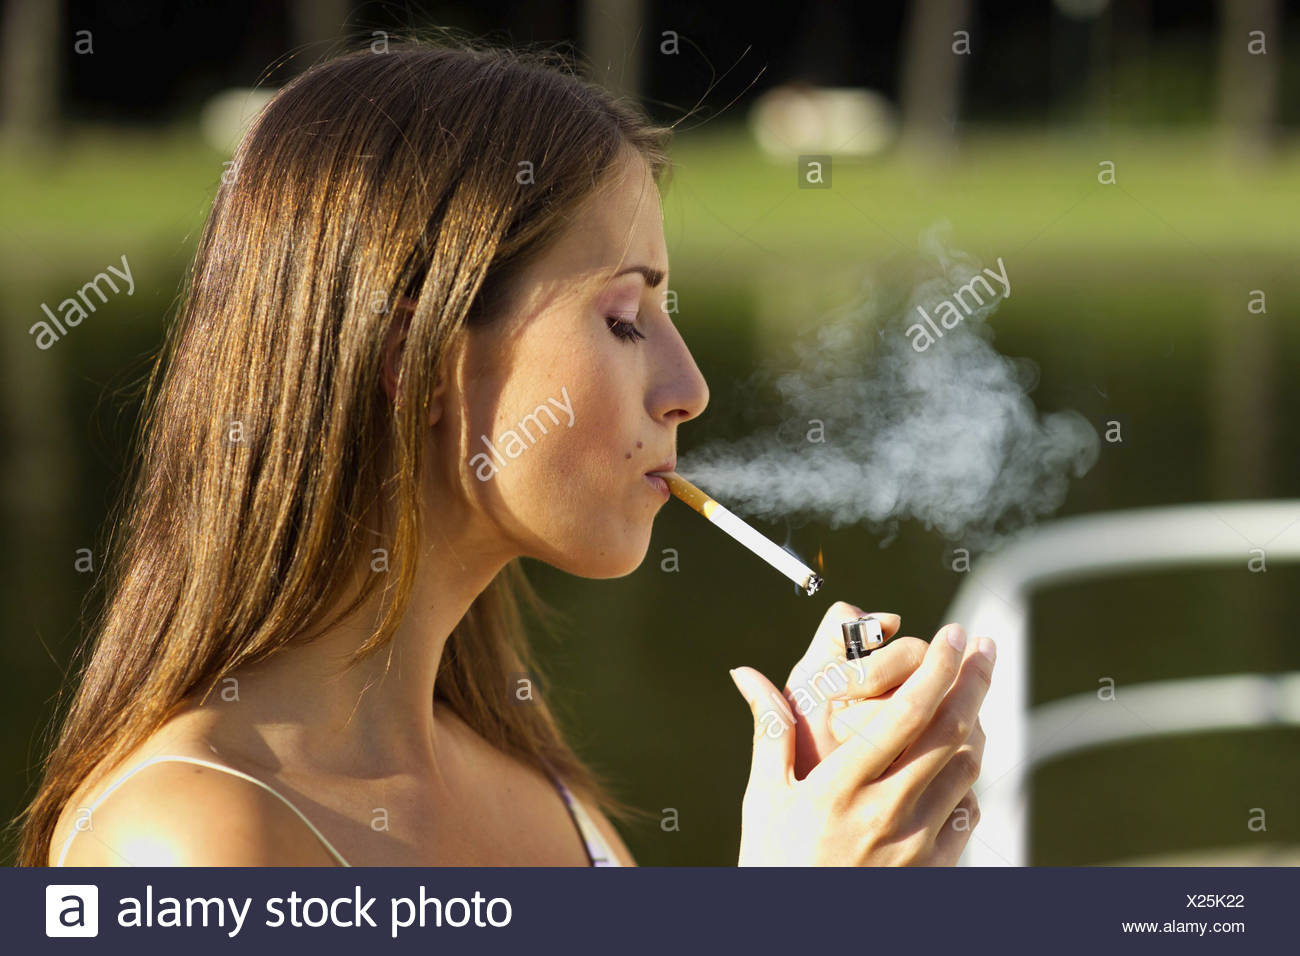 Beautiful Young Woman Lighting Cigarette Stock Photos & Beautiful Young Woman Lighting Cigarette ...